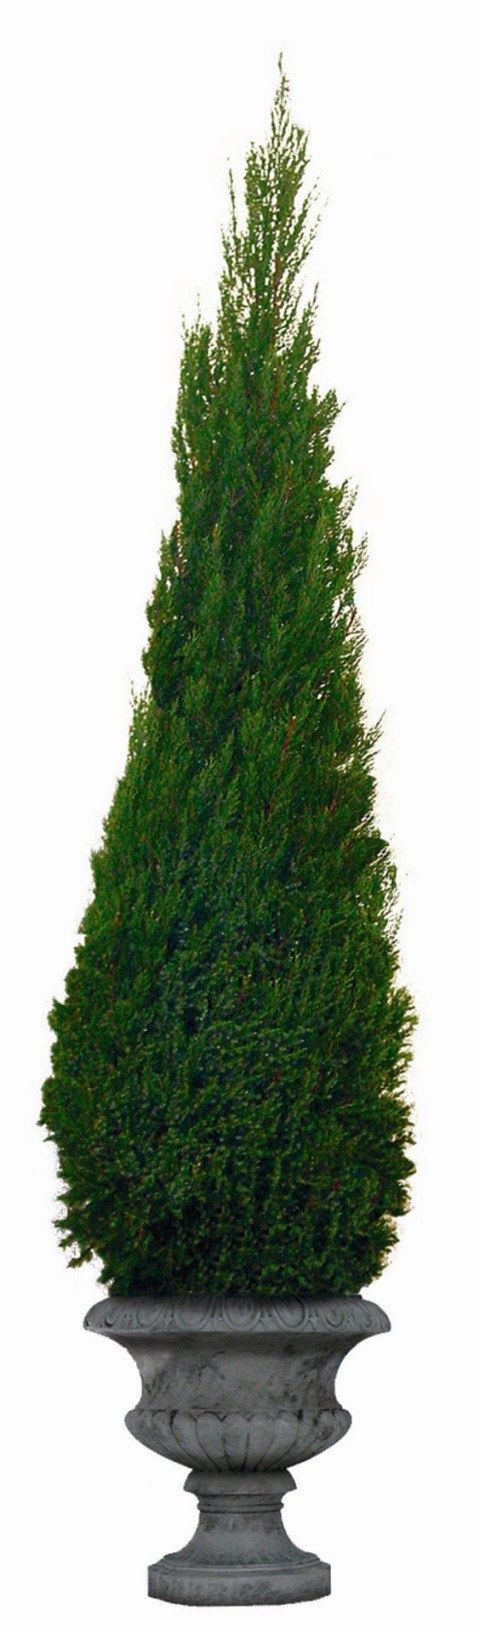 Preserved Cone Topiary 50""